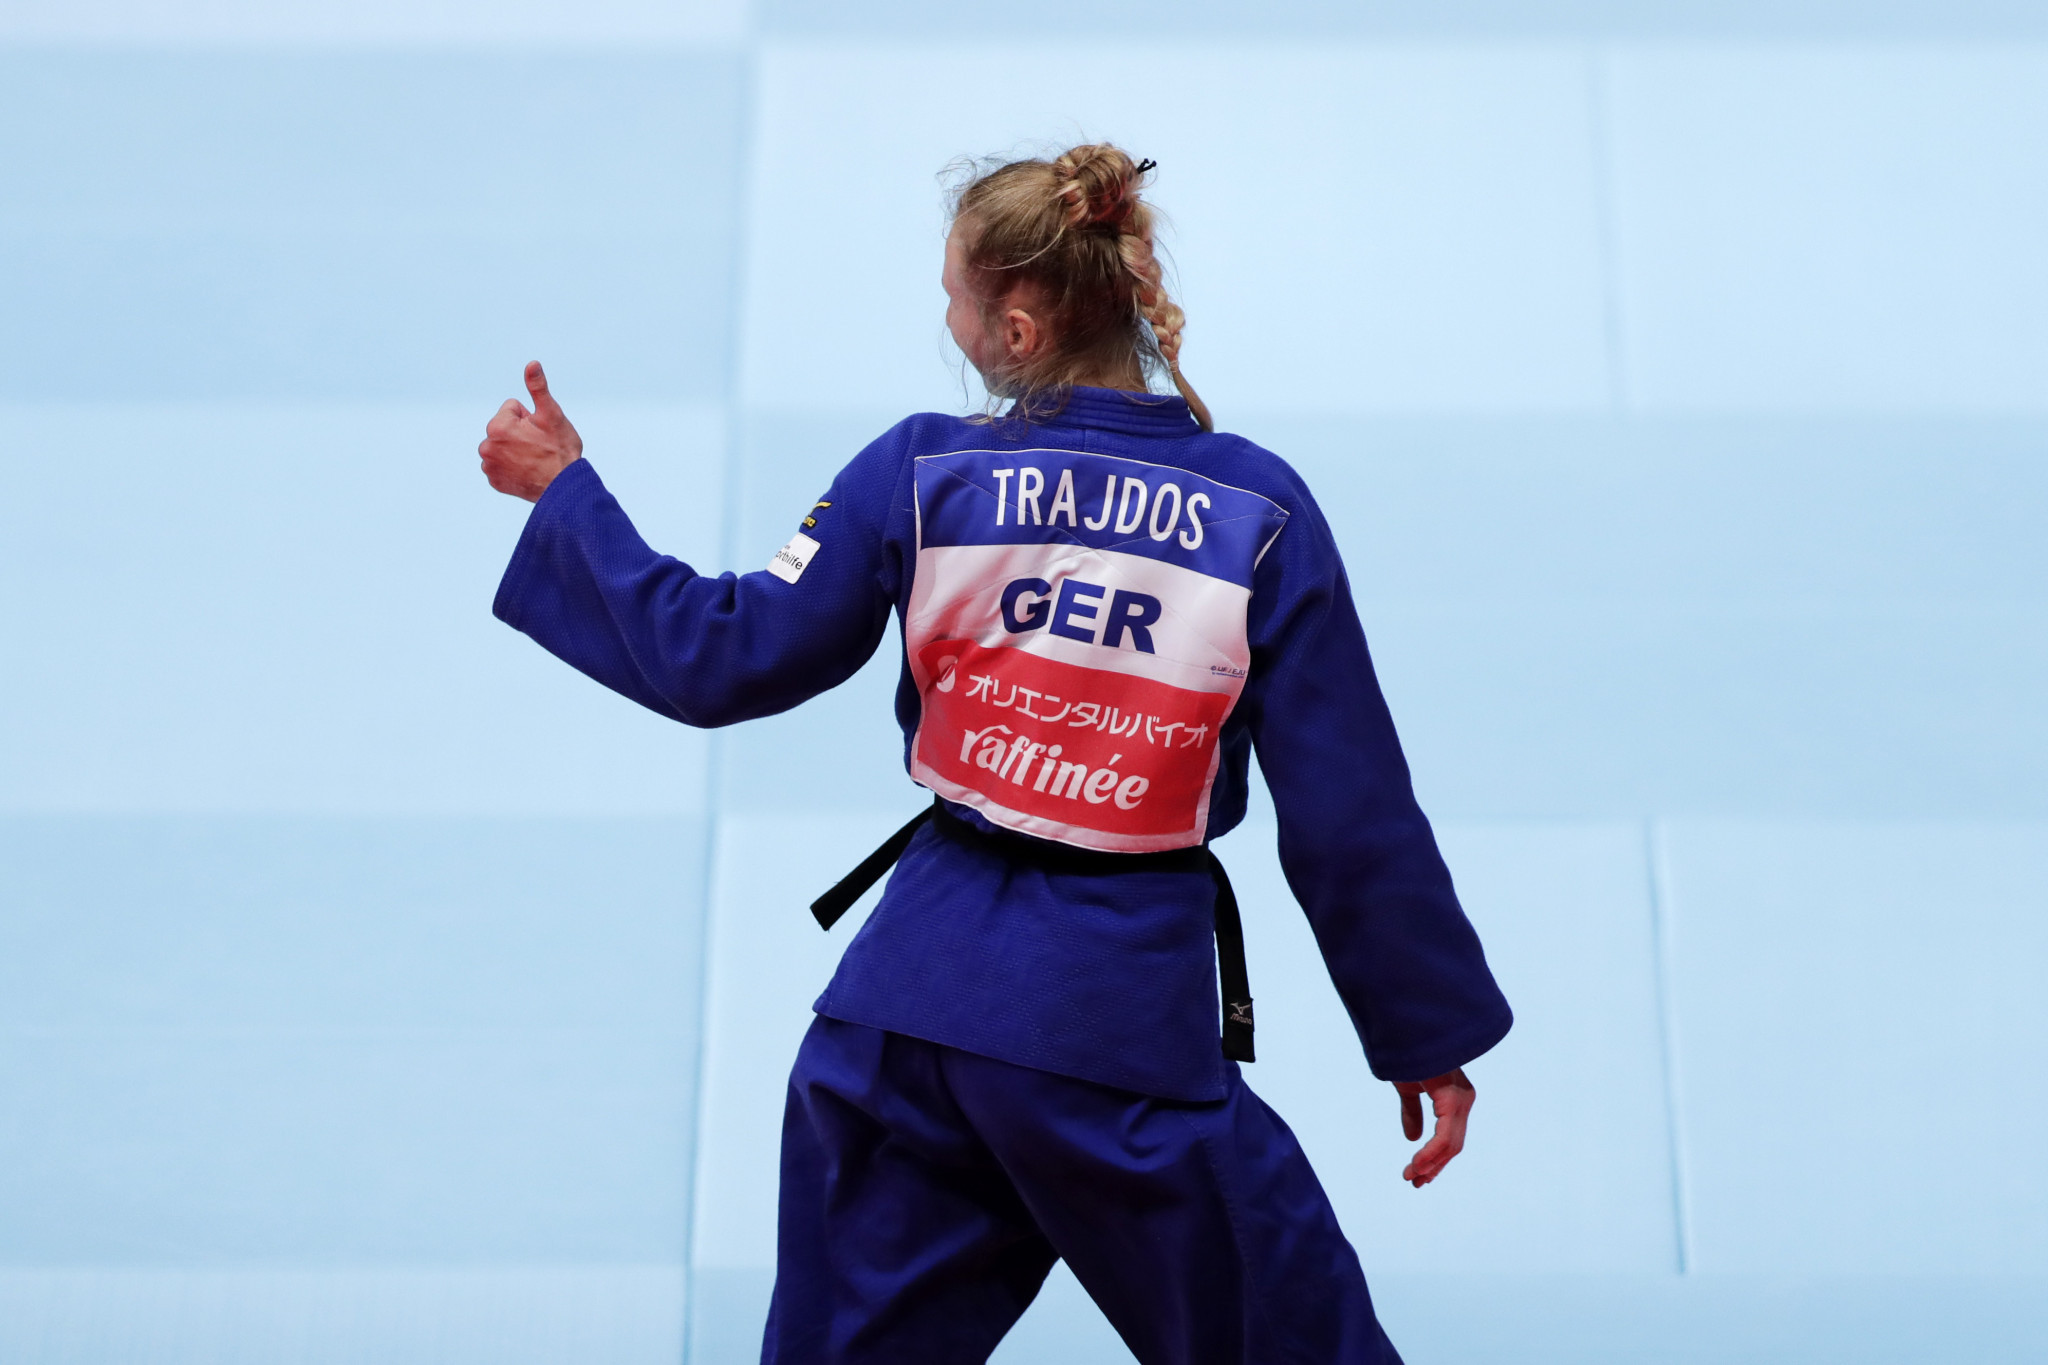 Germany is still to compete at this month's European Judo Championships ©Getty Images